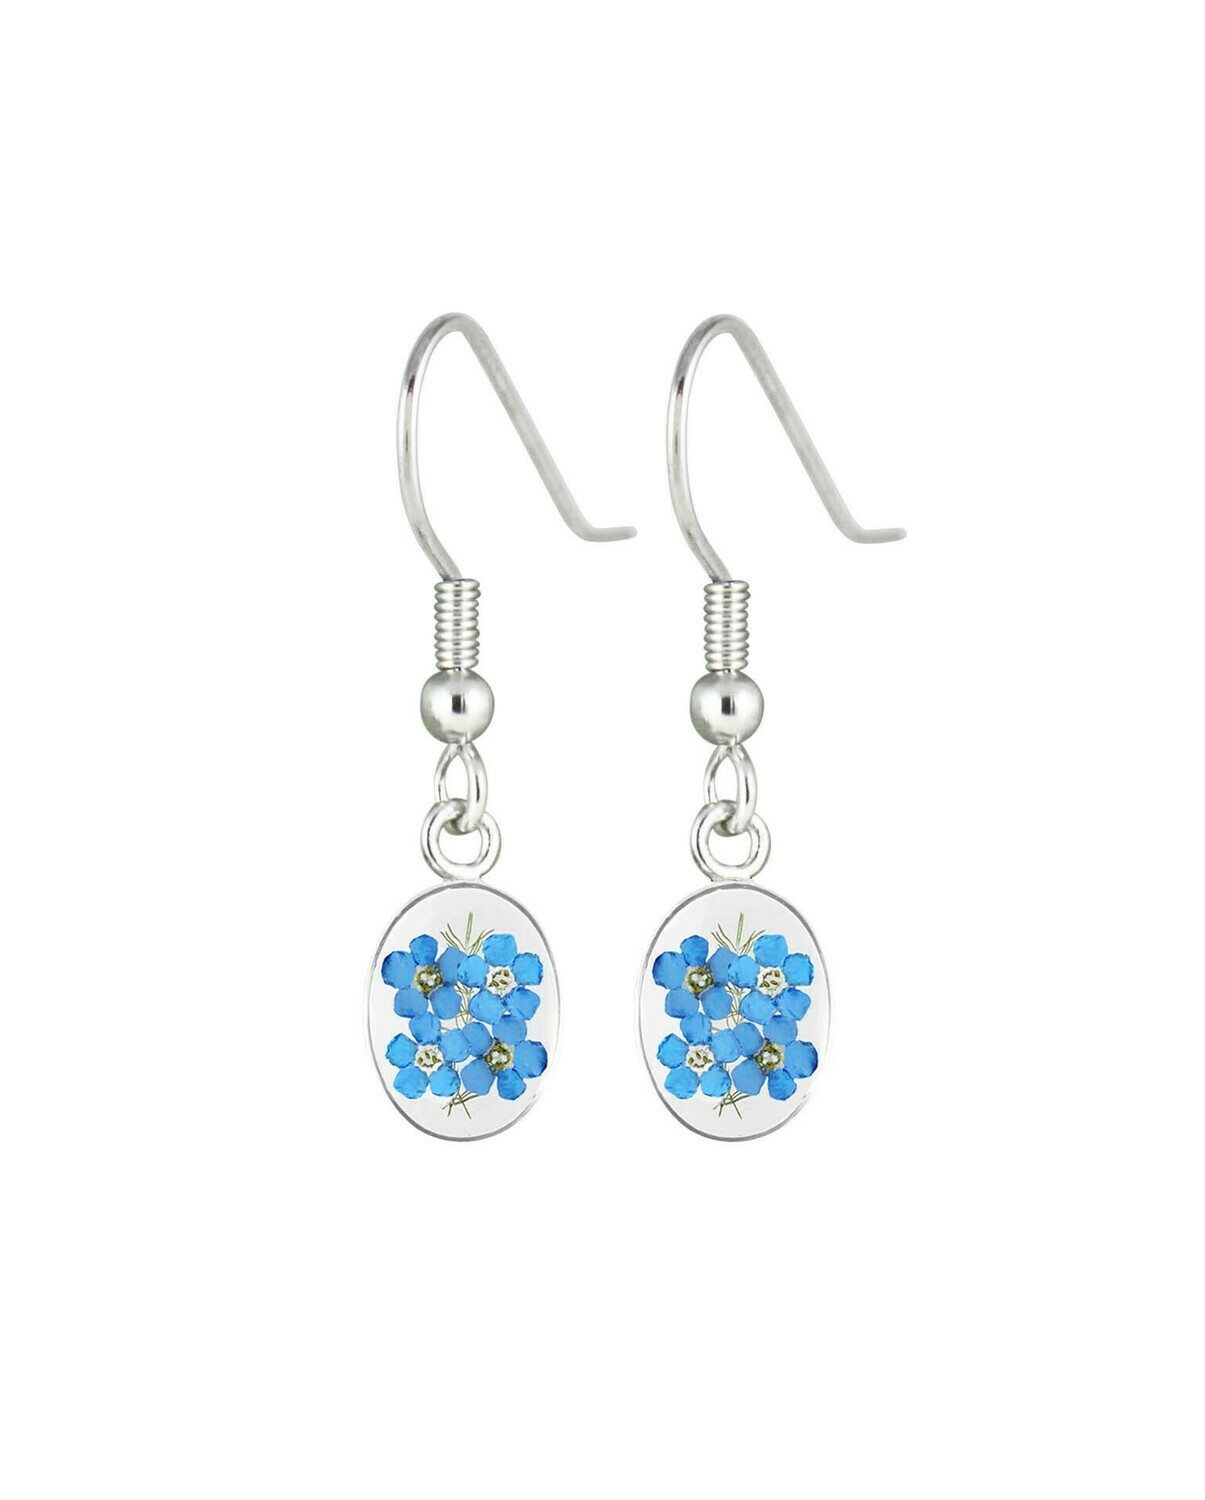 Forget-Me-Not, Small Oval Hanging Earrings, Transparent.